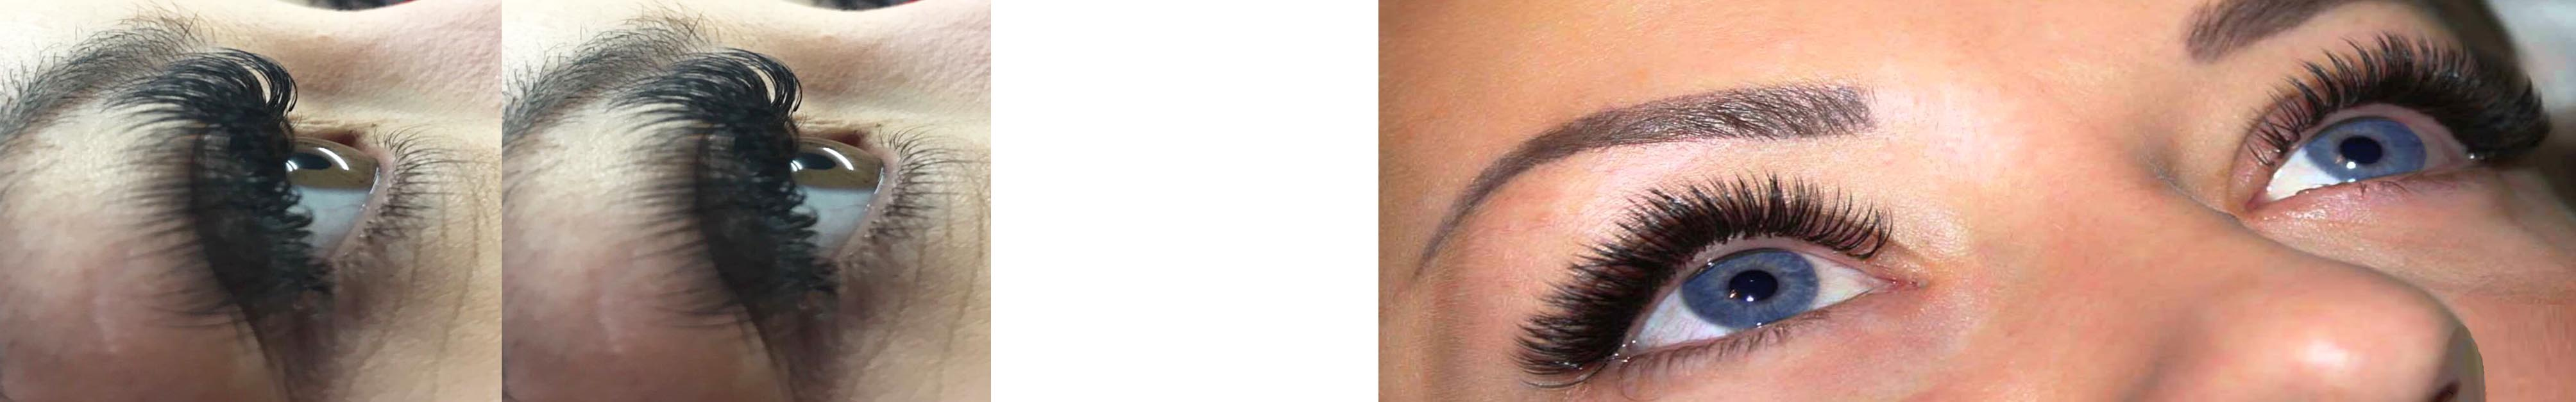 Individual Eyelash Extensions Vanitynvarnish